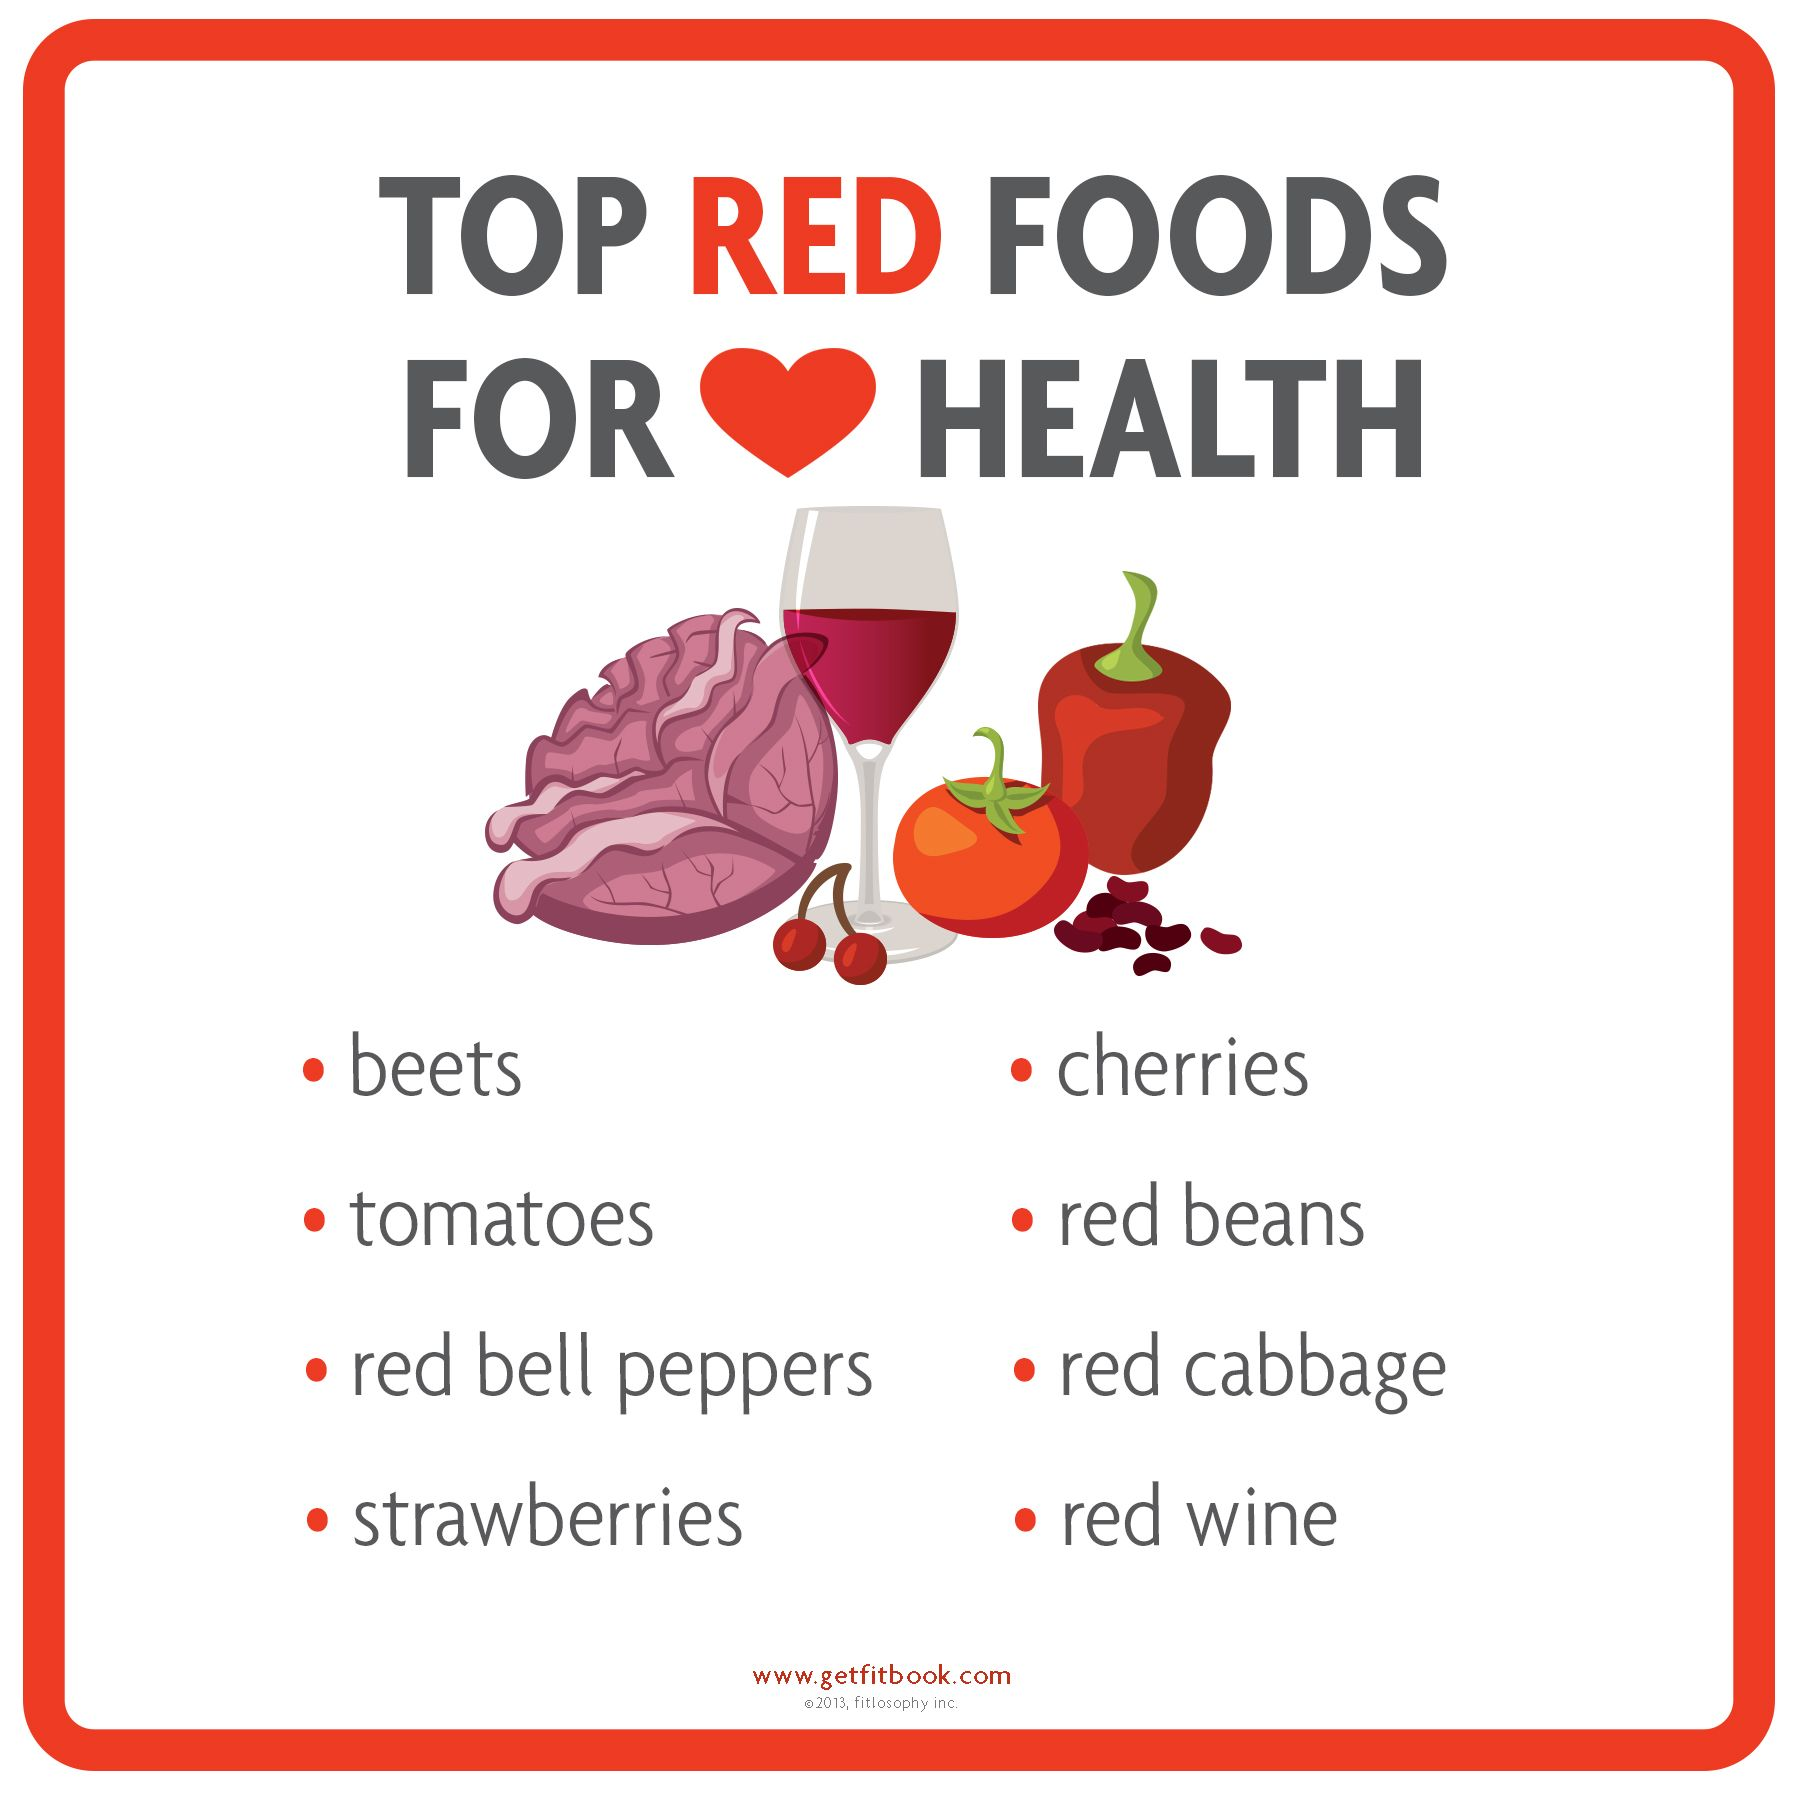 Get Fit Go Red Top Red Foods For